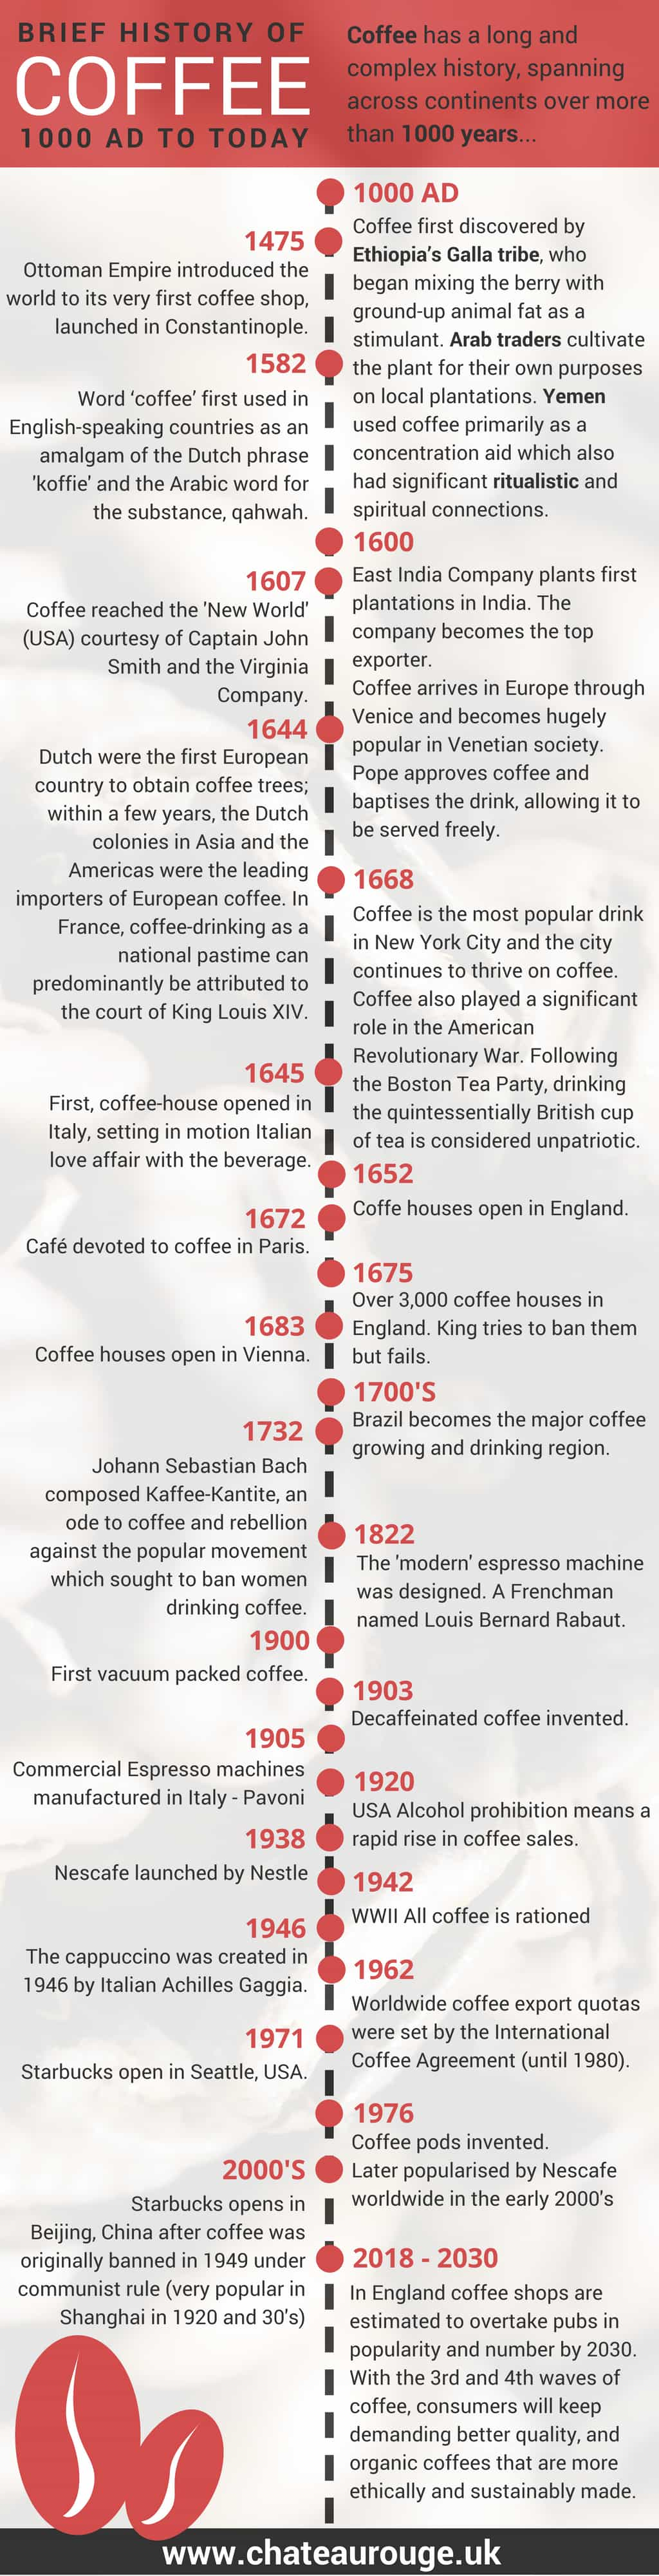 brief history of coffee timeline